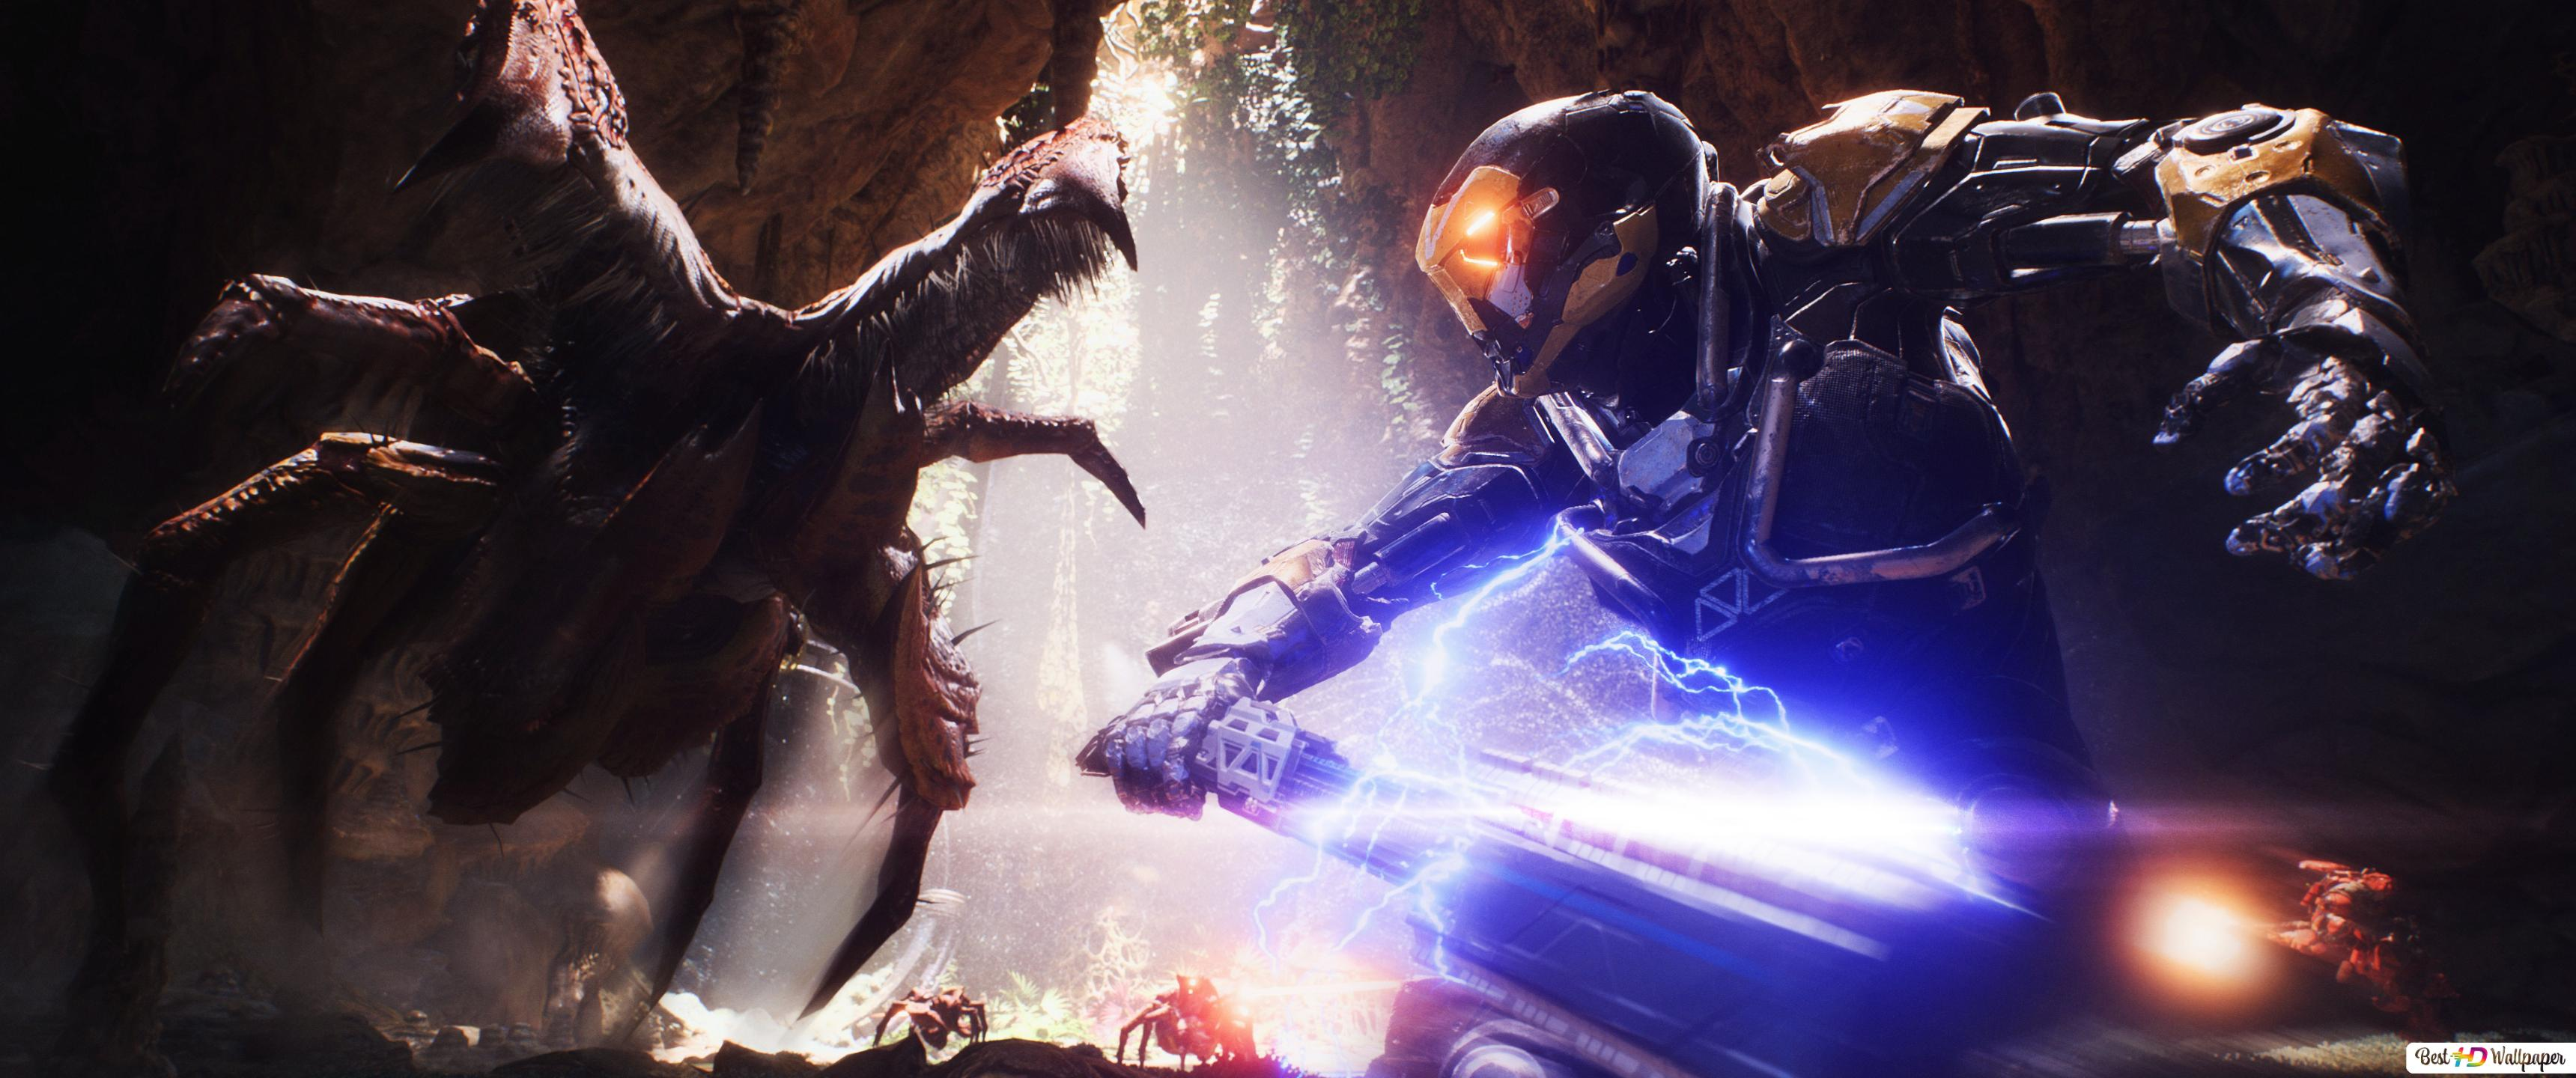 Face Off at Anthem HD wallpaper download